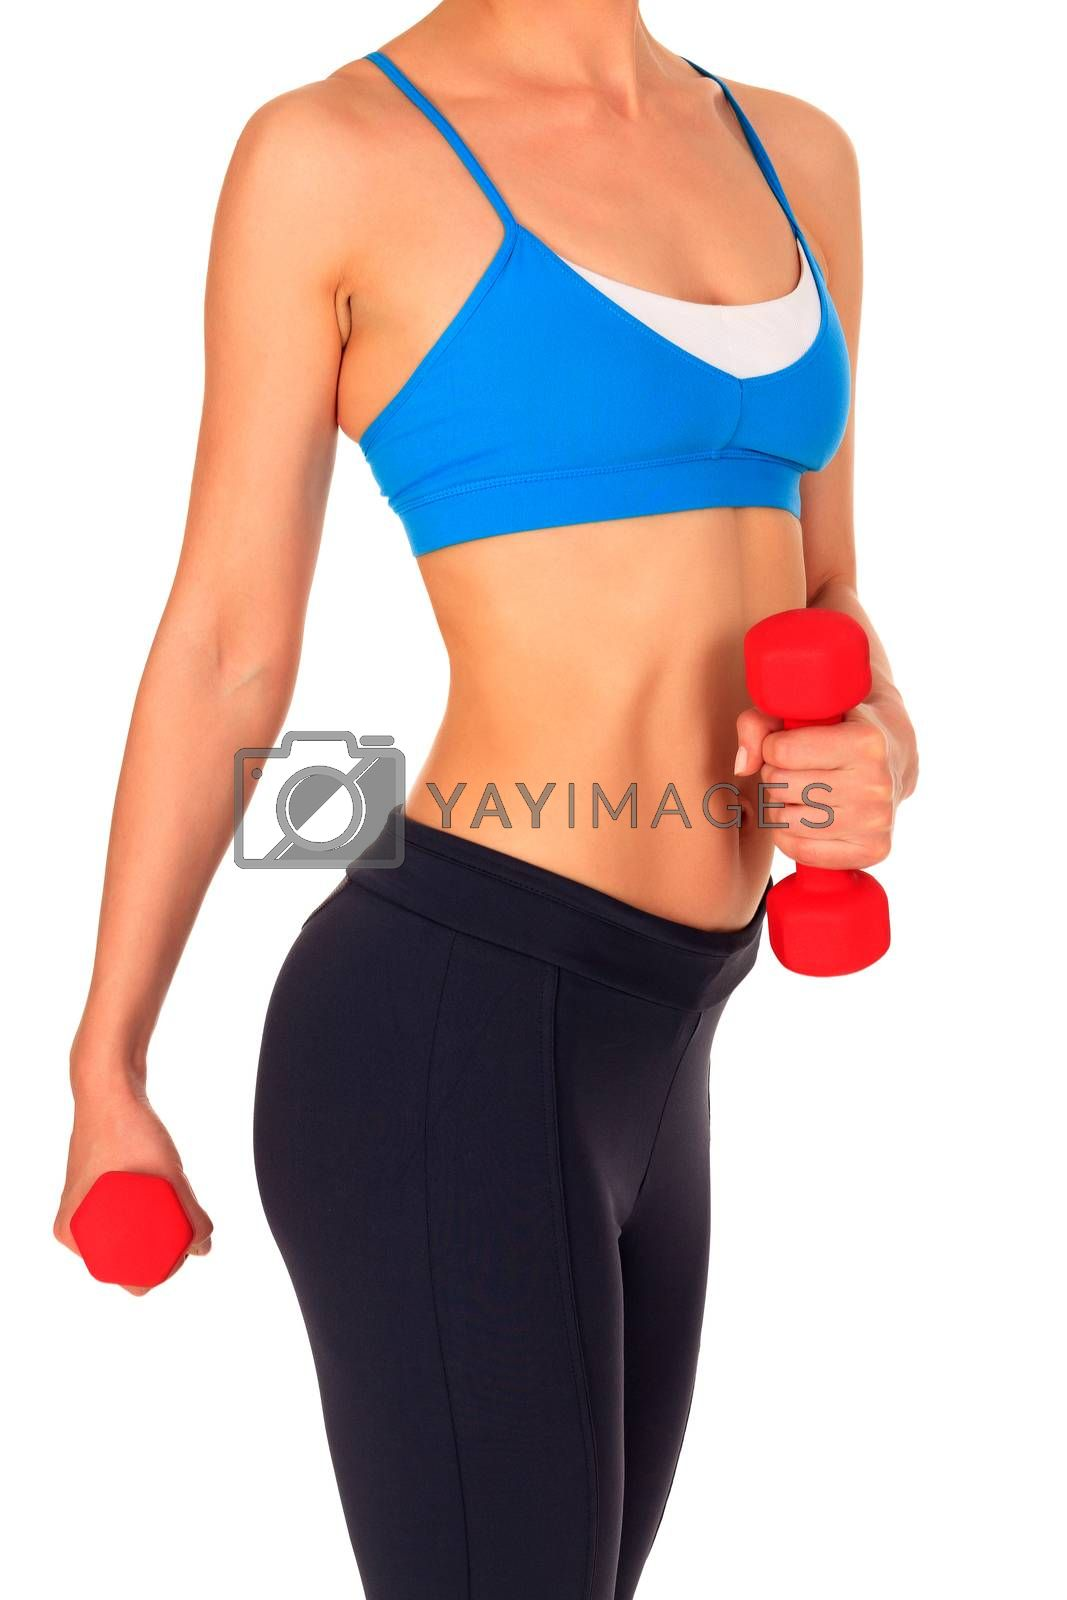 Beautiful body of a young fit slim woman lifting dumbbells isolated on white background